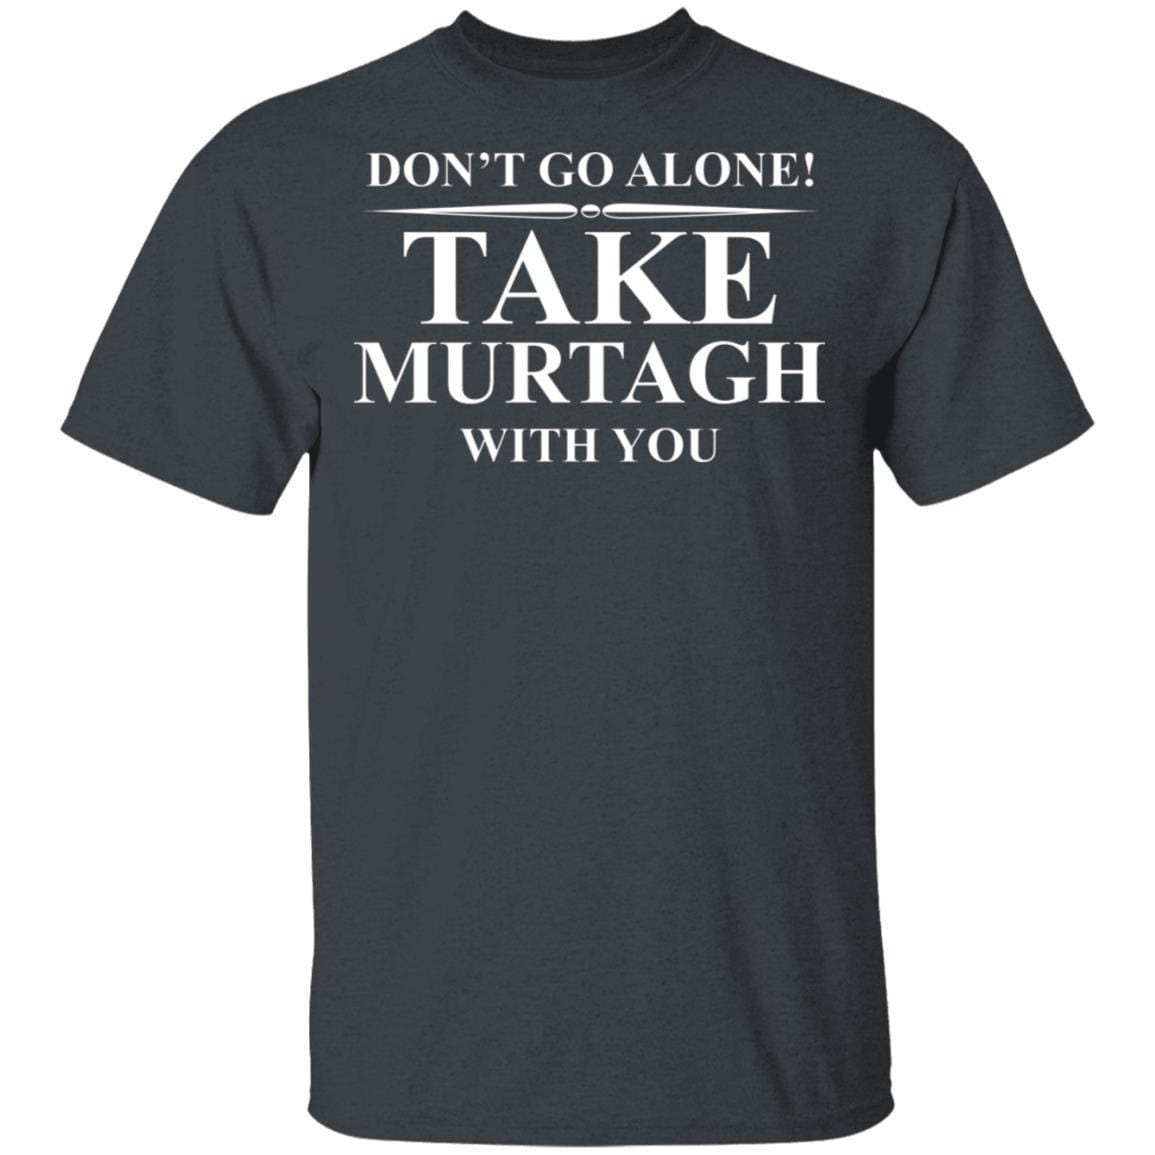 Don't Go Alone Take Murtagh With You T-Shirts, Hoodies 1049-9957-92796760-48192 - Tee Ript